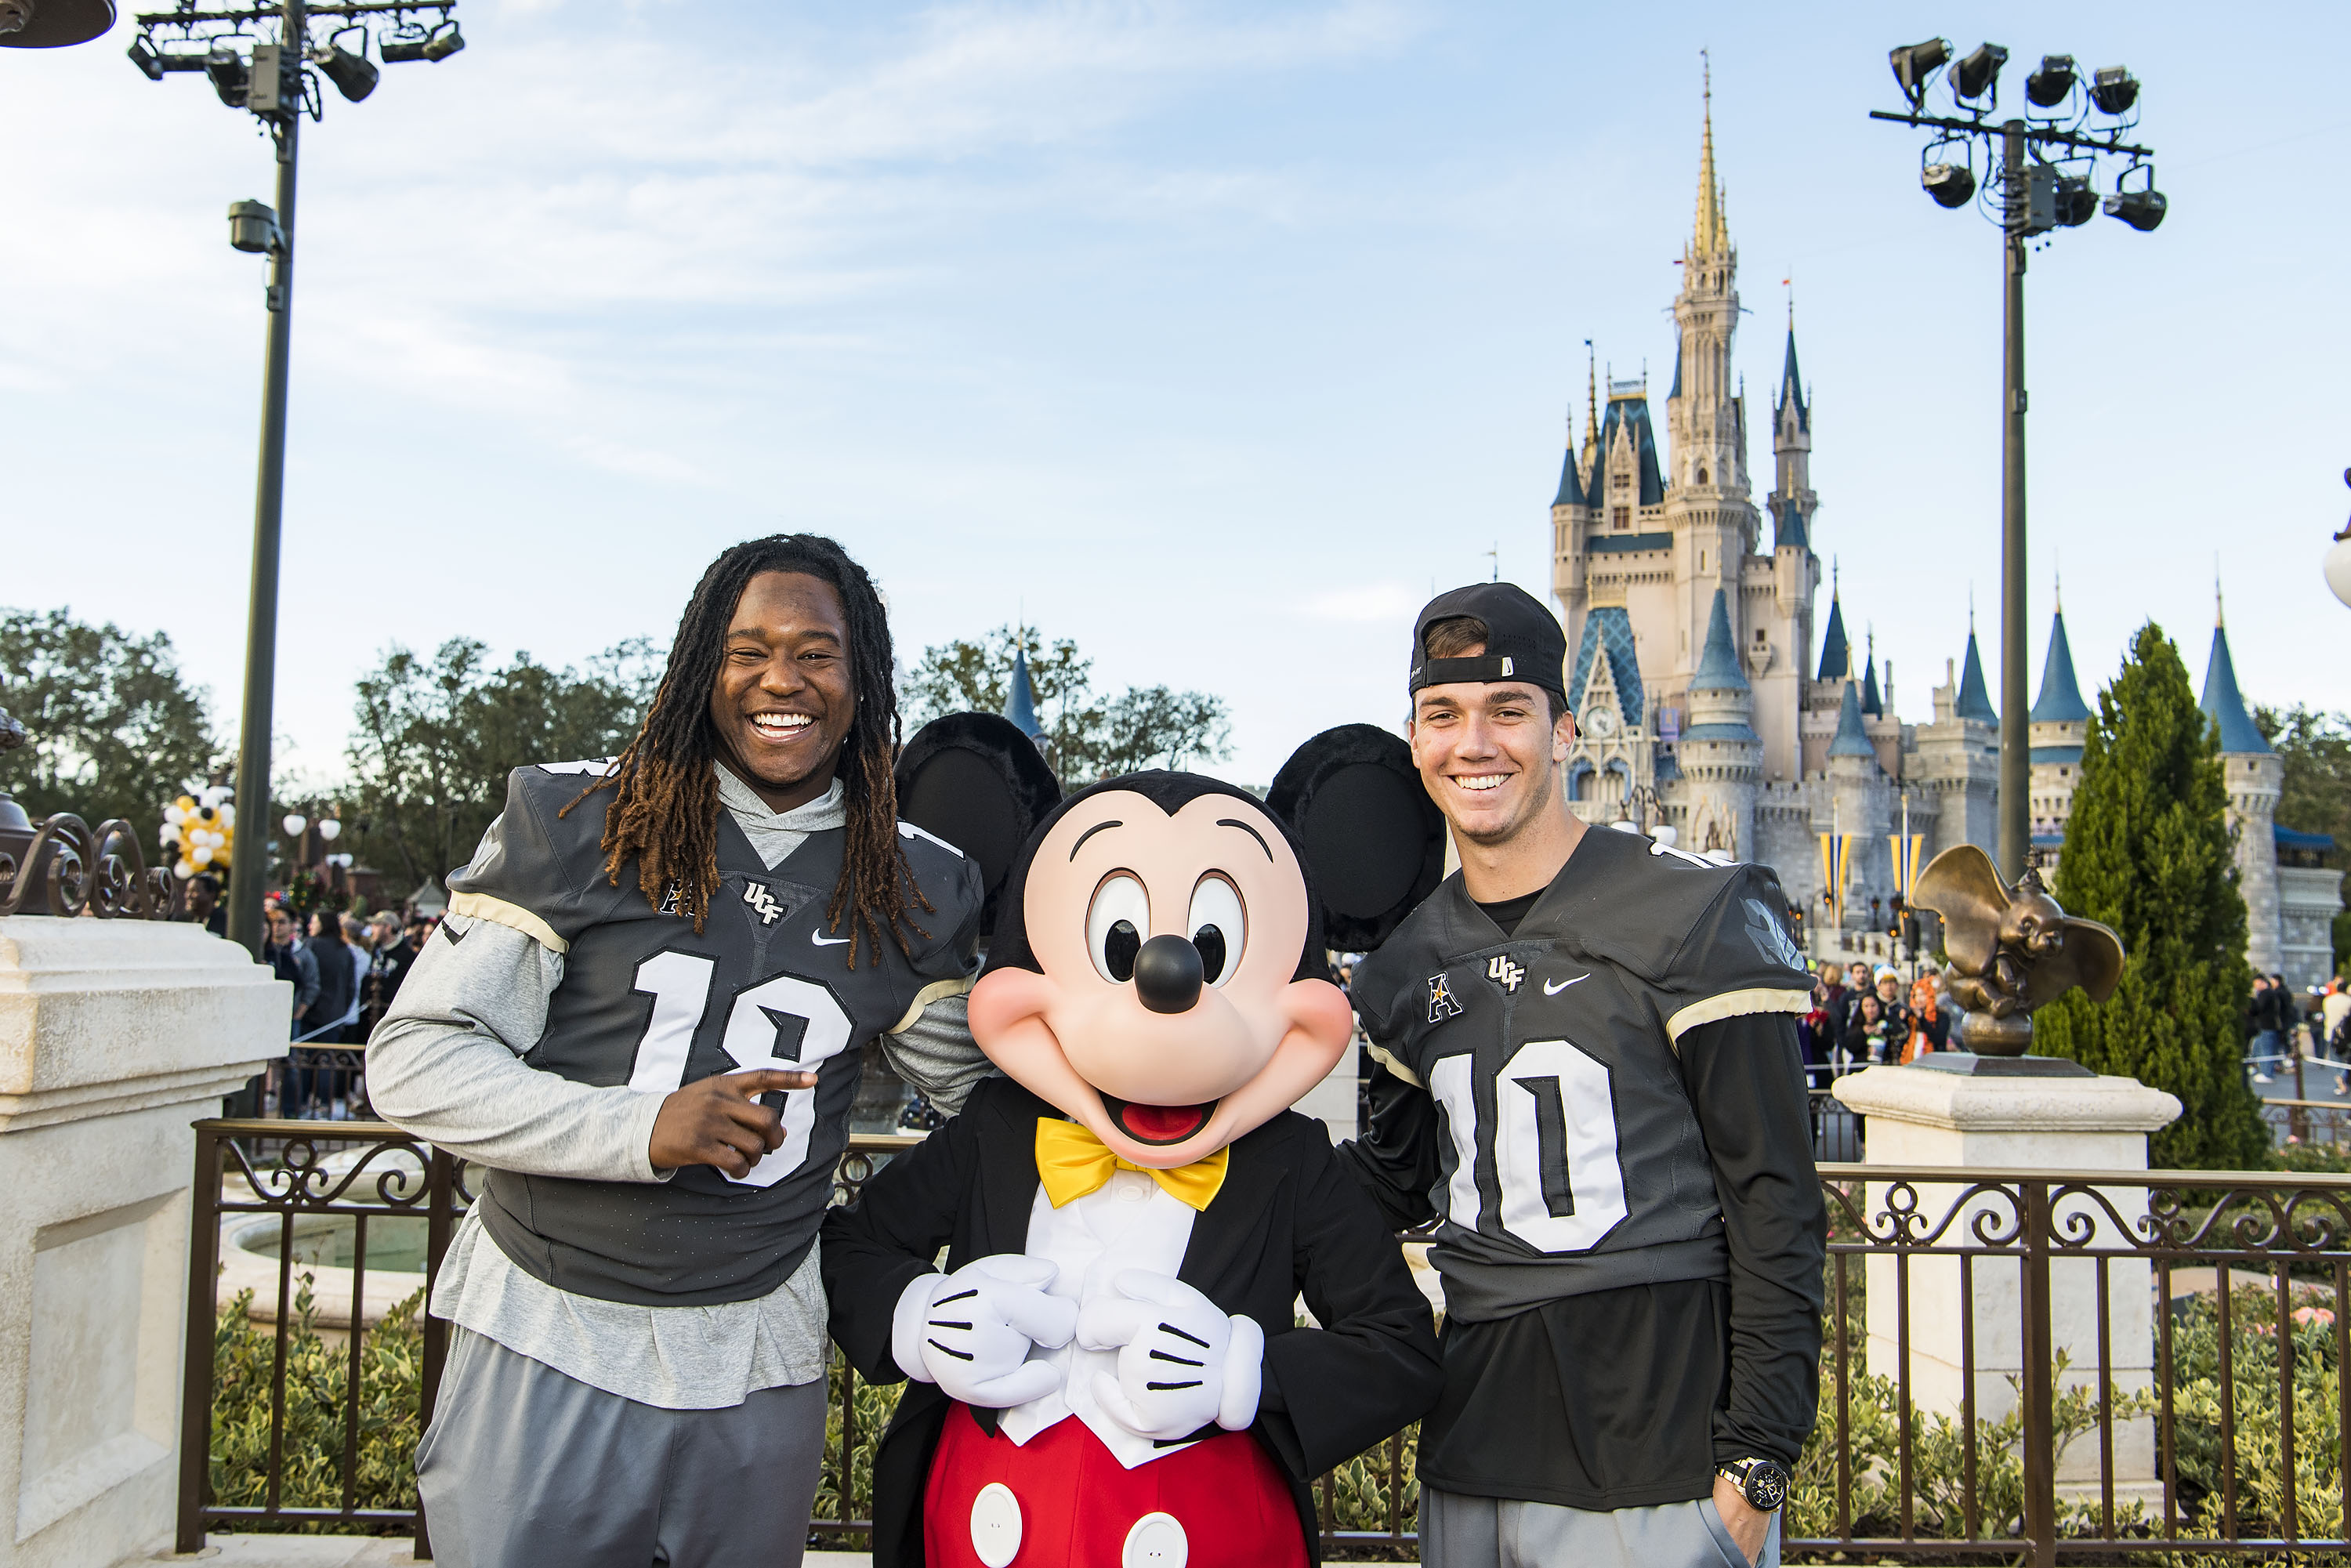 The University of Central Florida Knights linebacker Shaquem Griffin and quarterback McKenzie Milton pose with Mickey Mouse